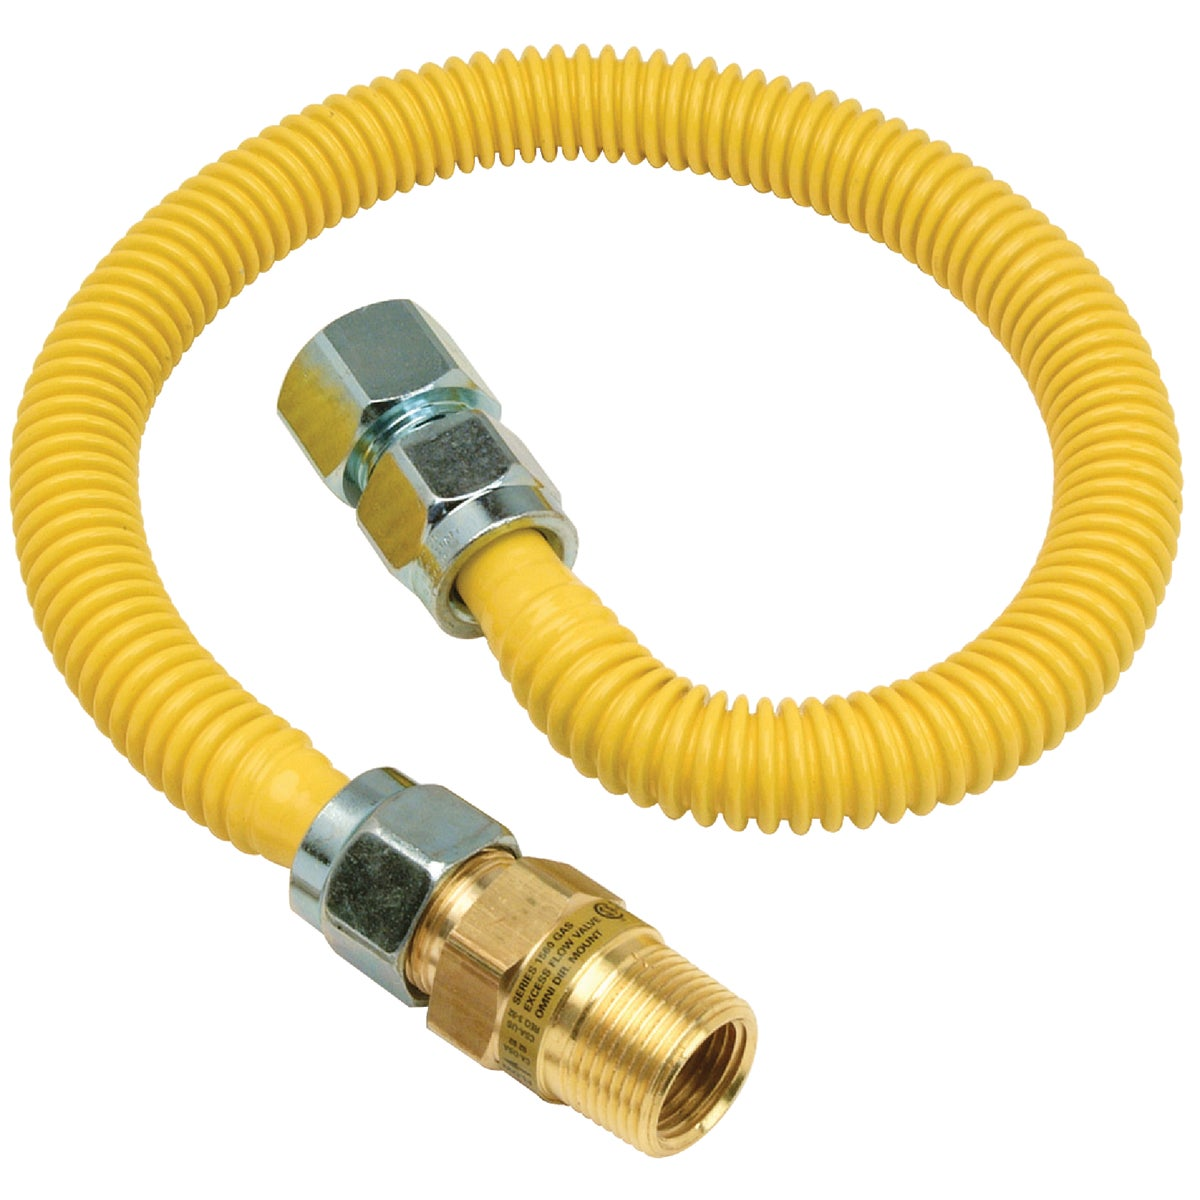 3/4X3/4-48 GAS CONNECTOR - CSSC12E-48P by Brass Craft